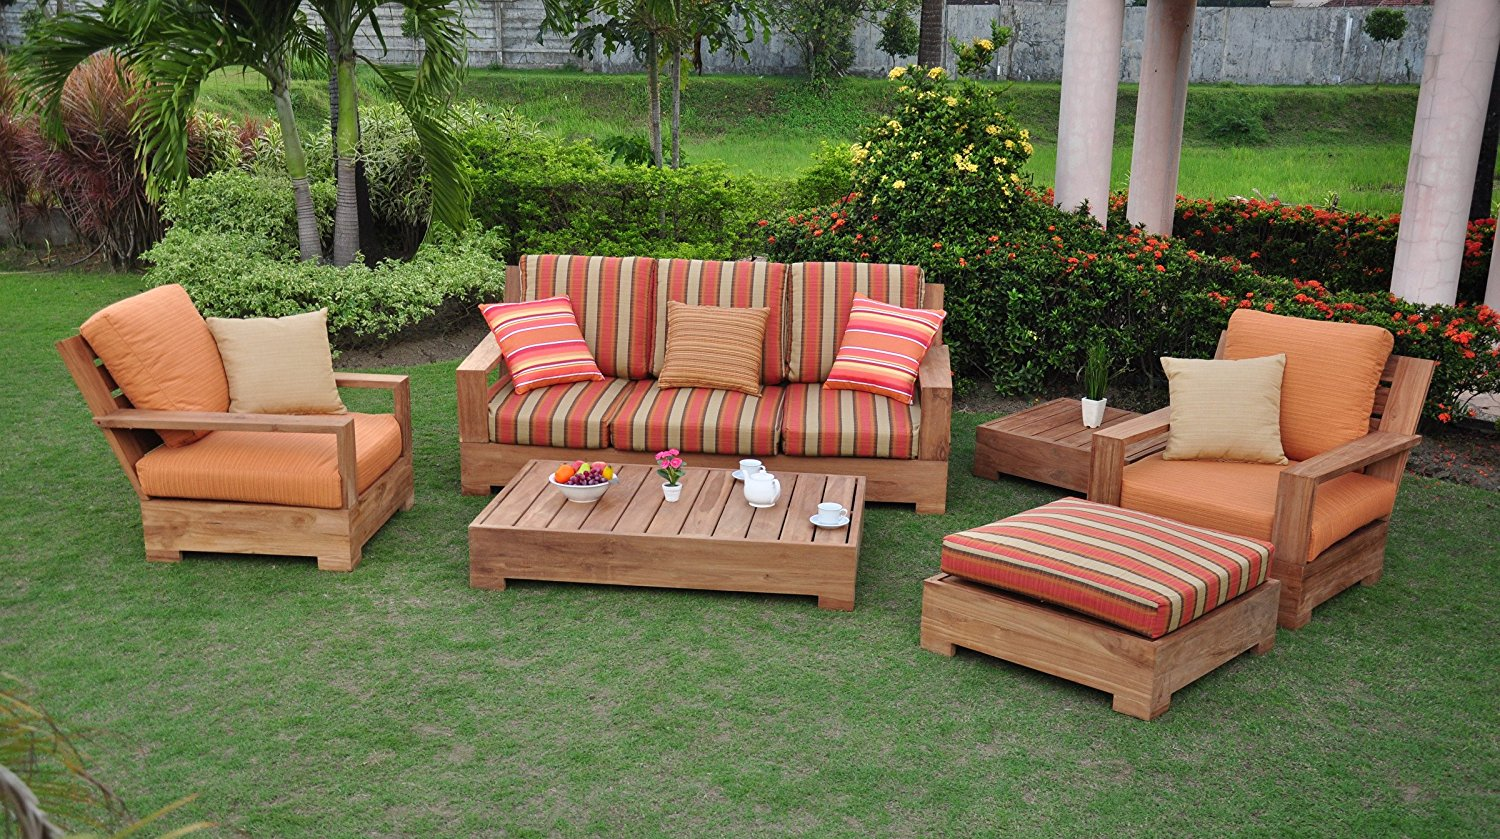 Best Teak Sealer. Outdoor Furniture Care Guide And